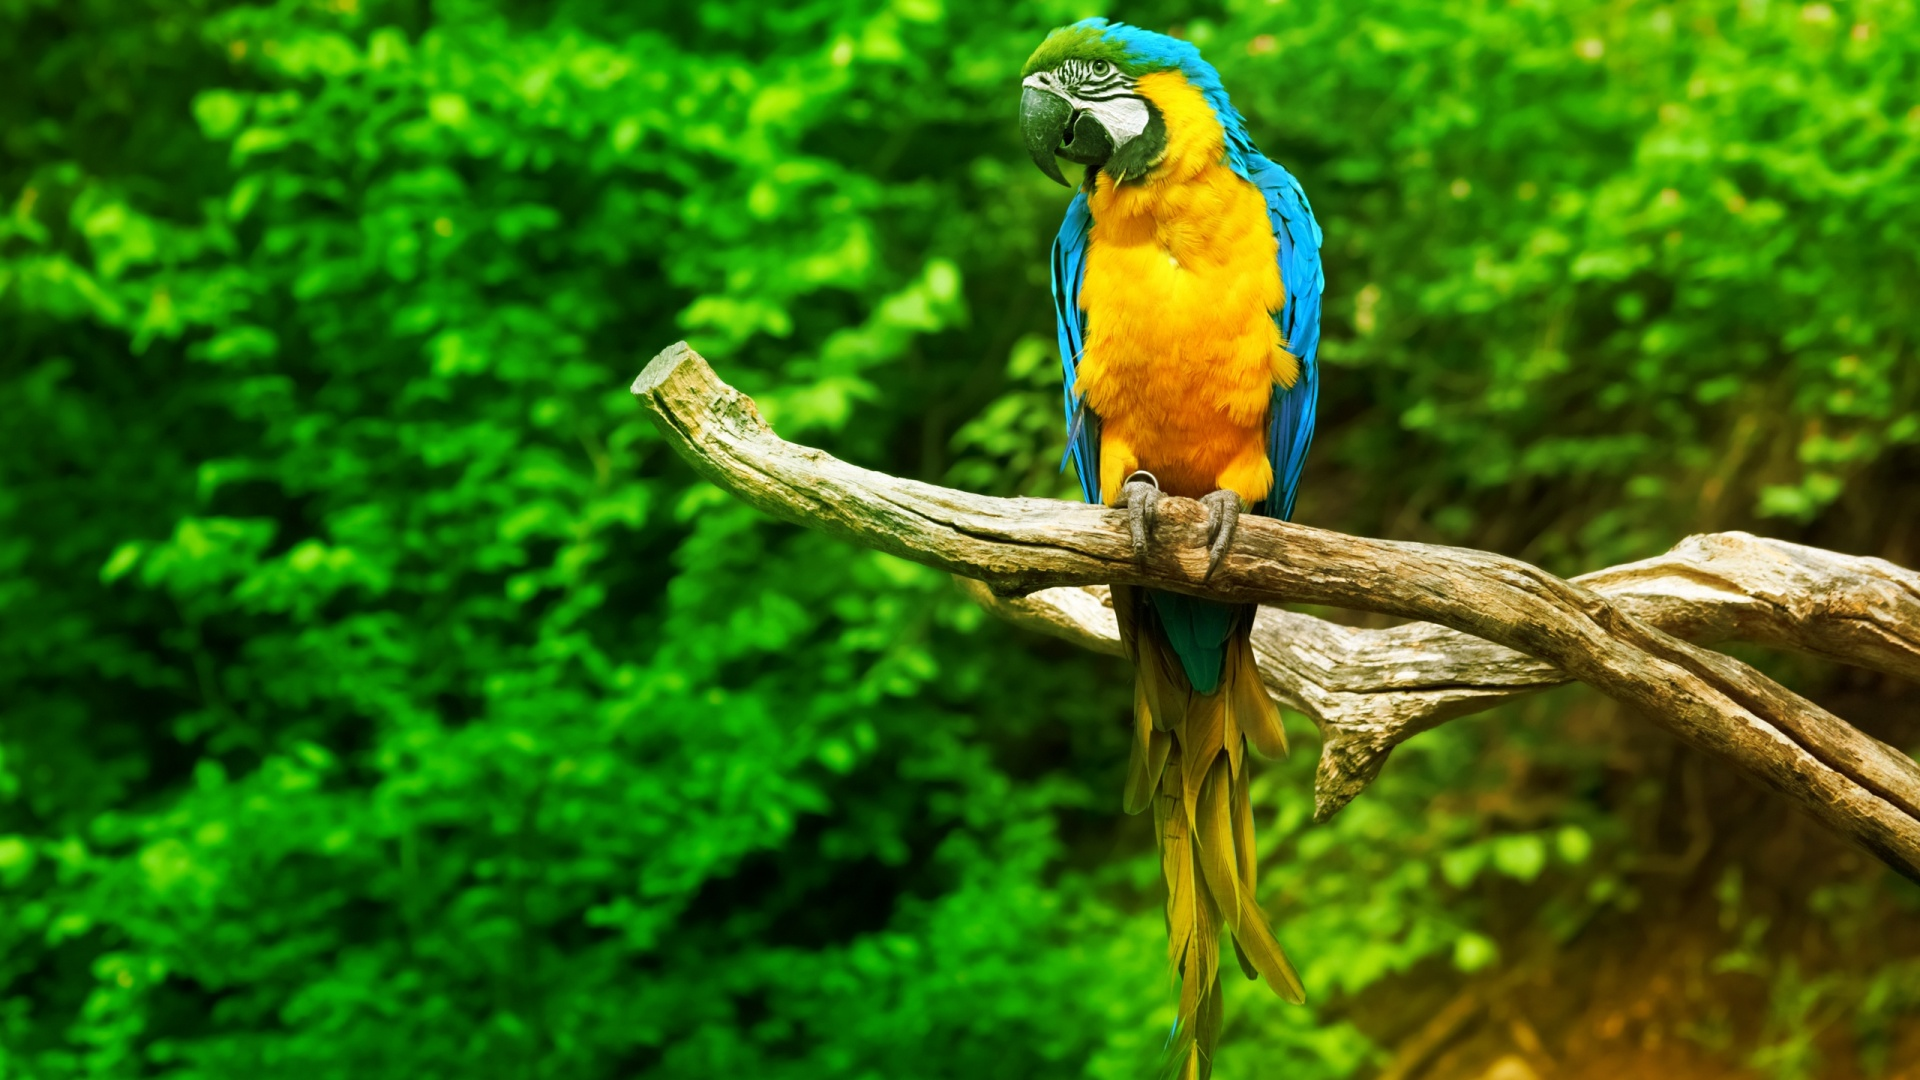 Download Best Cute Parrot Wallpaper Wallpapers Images Free